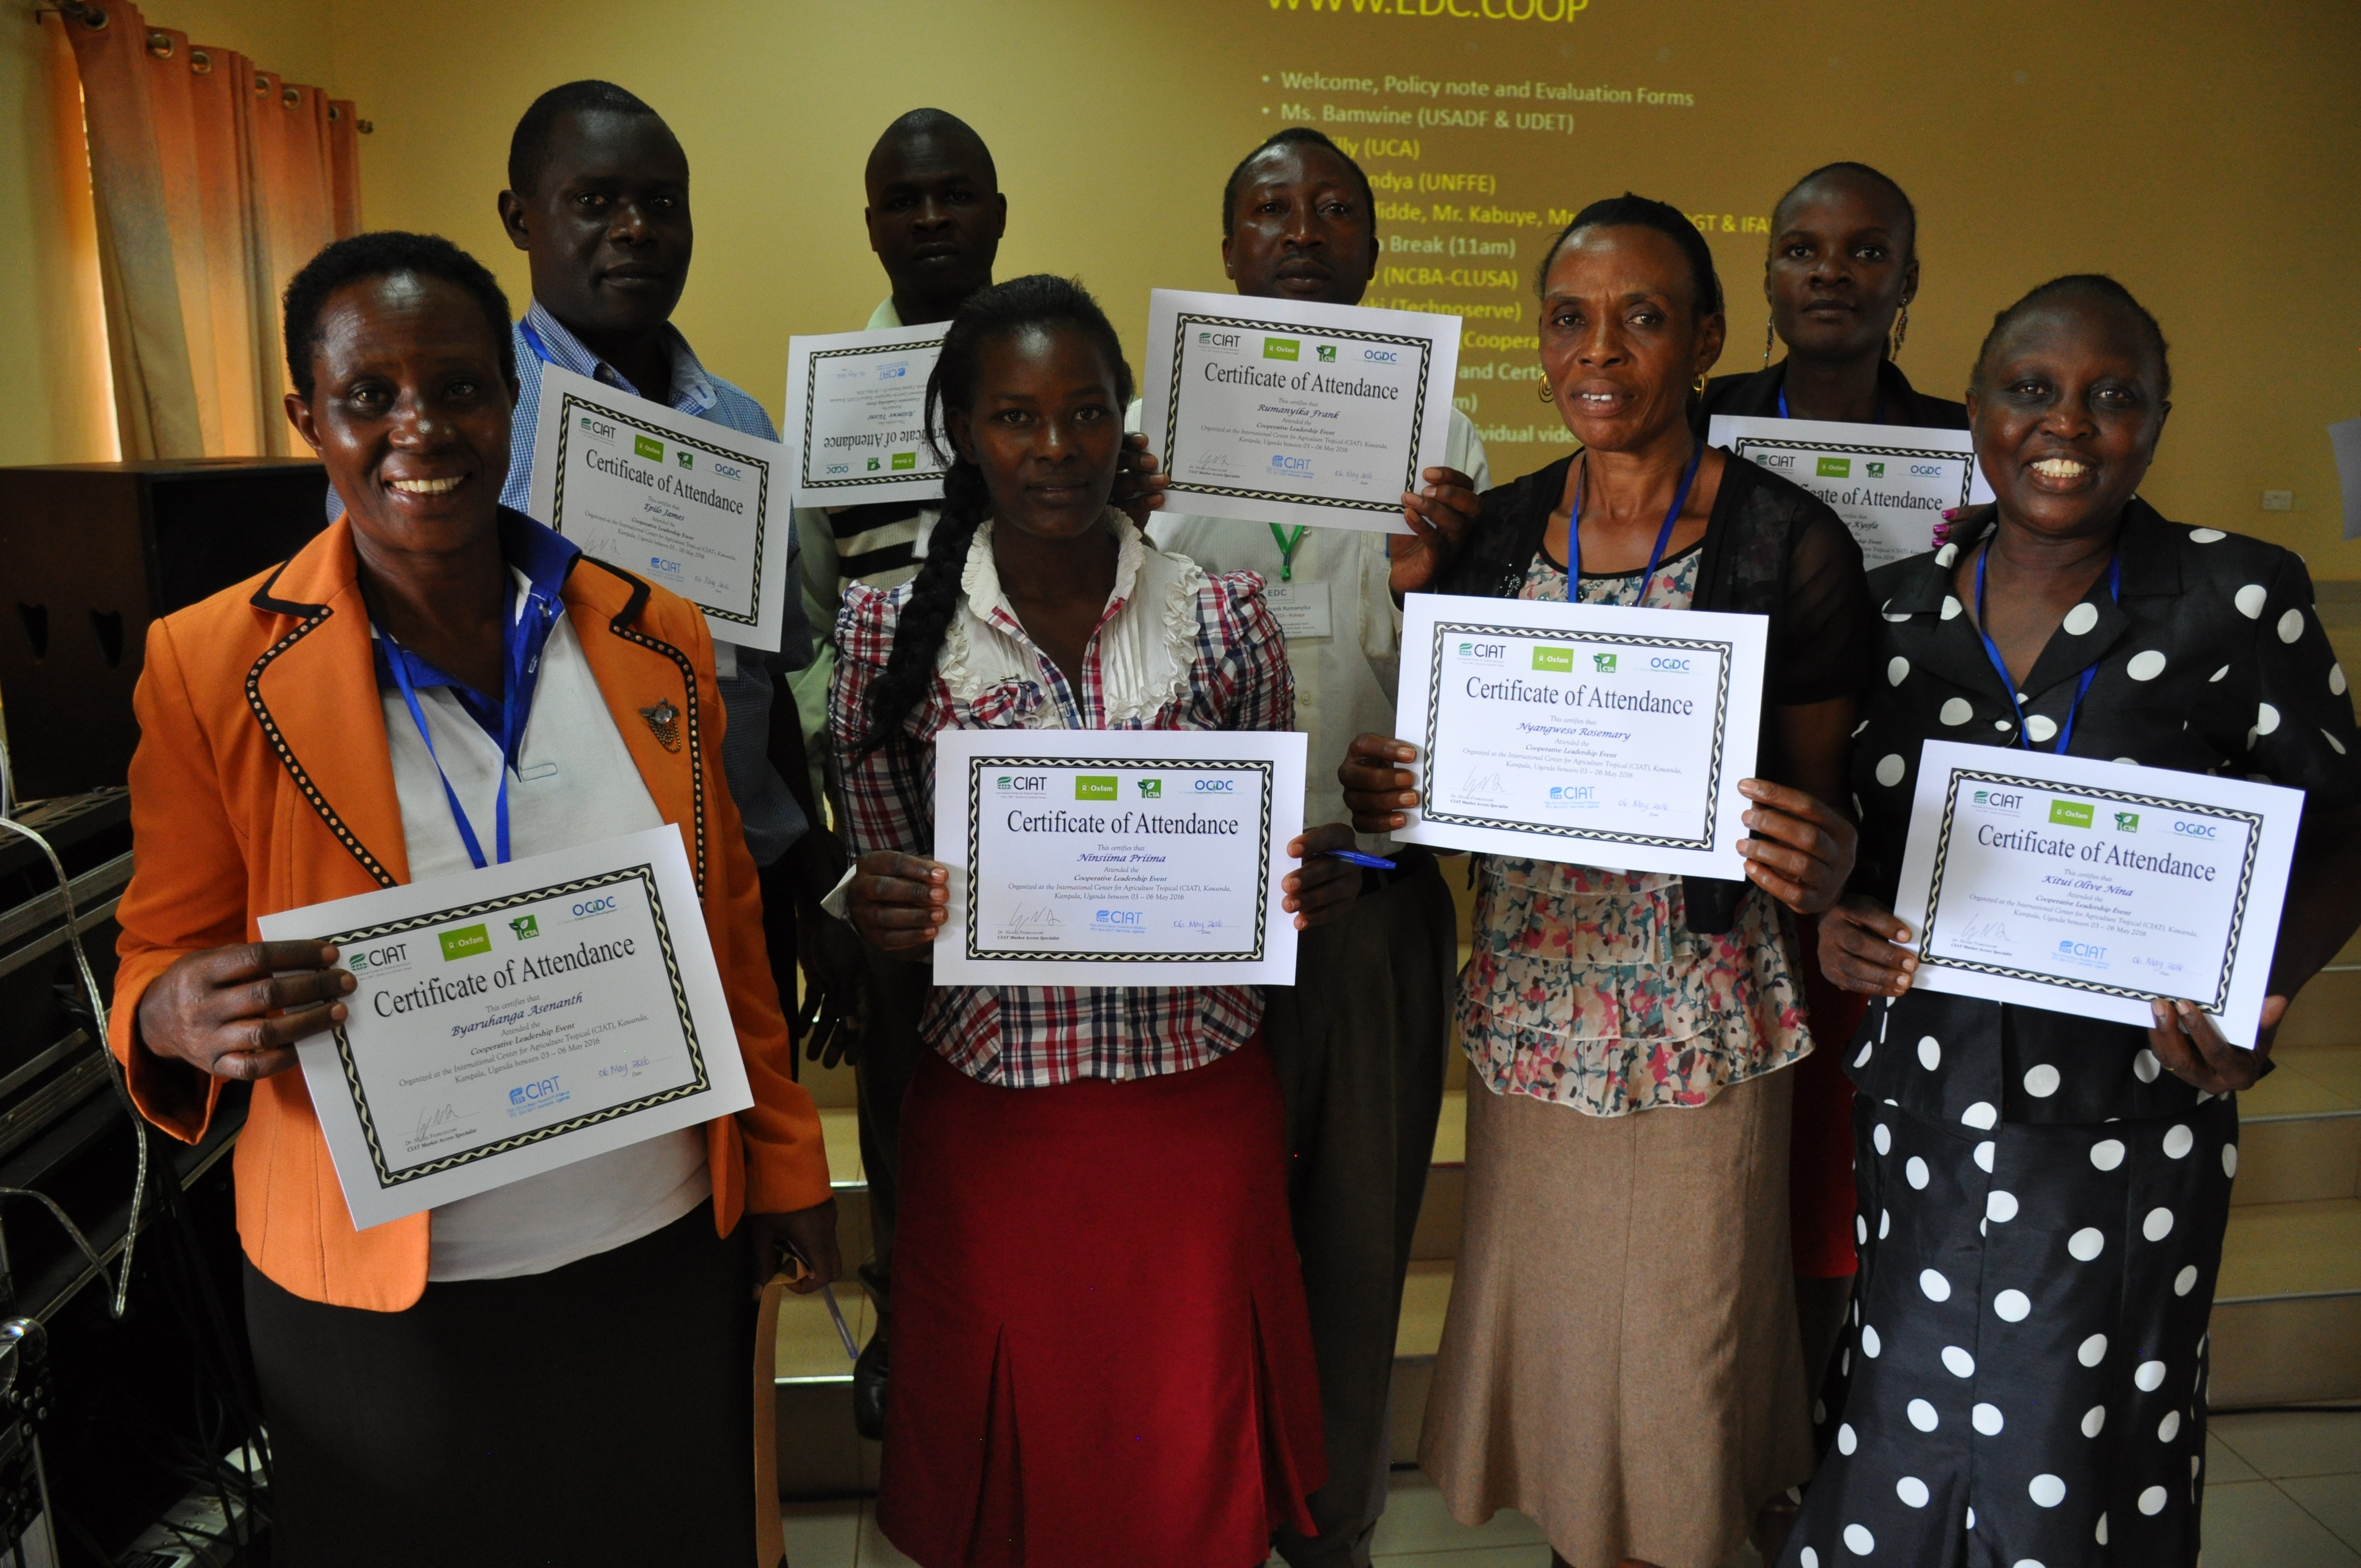 Some of the leaders and managers of African cooperatives who were trained